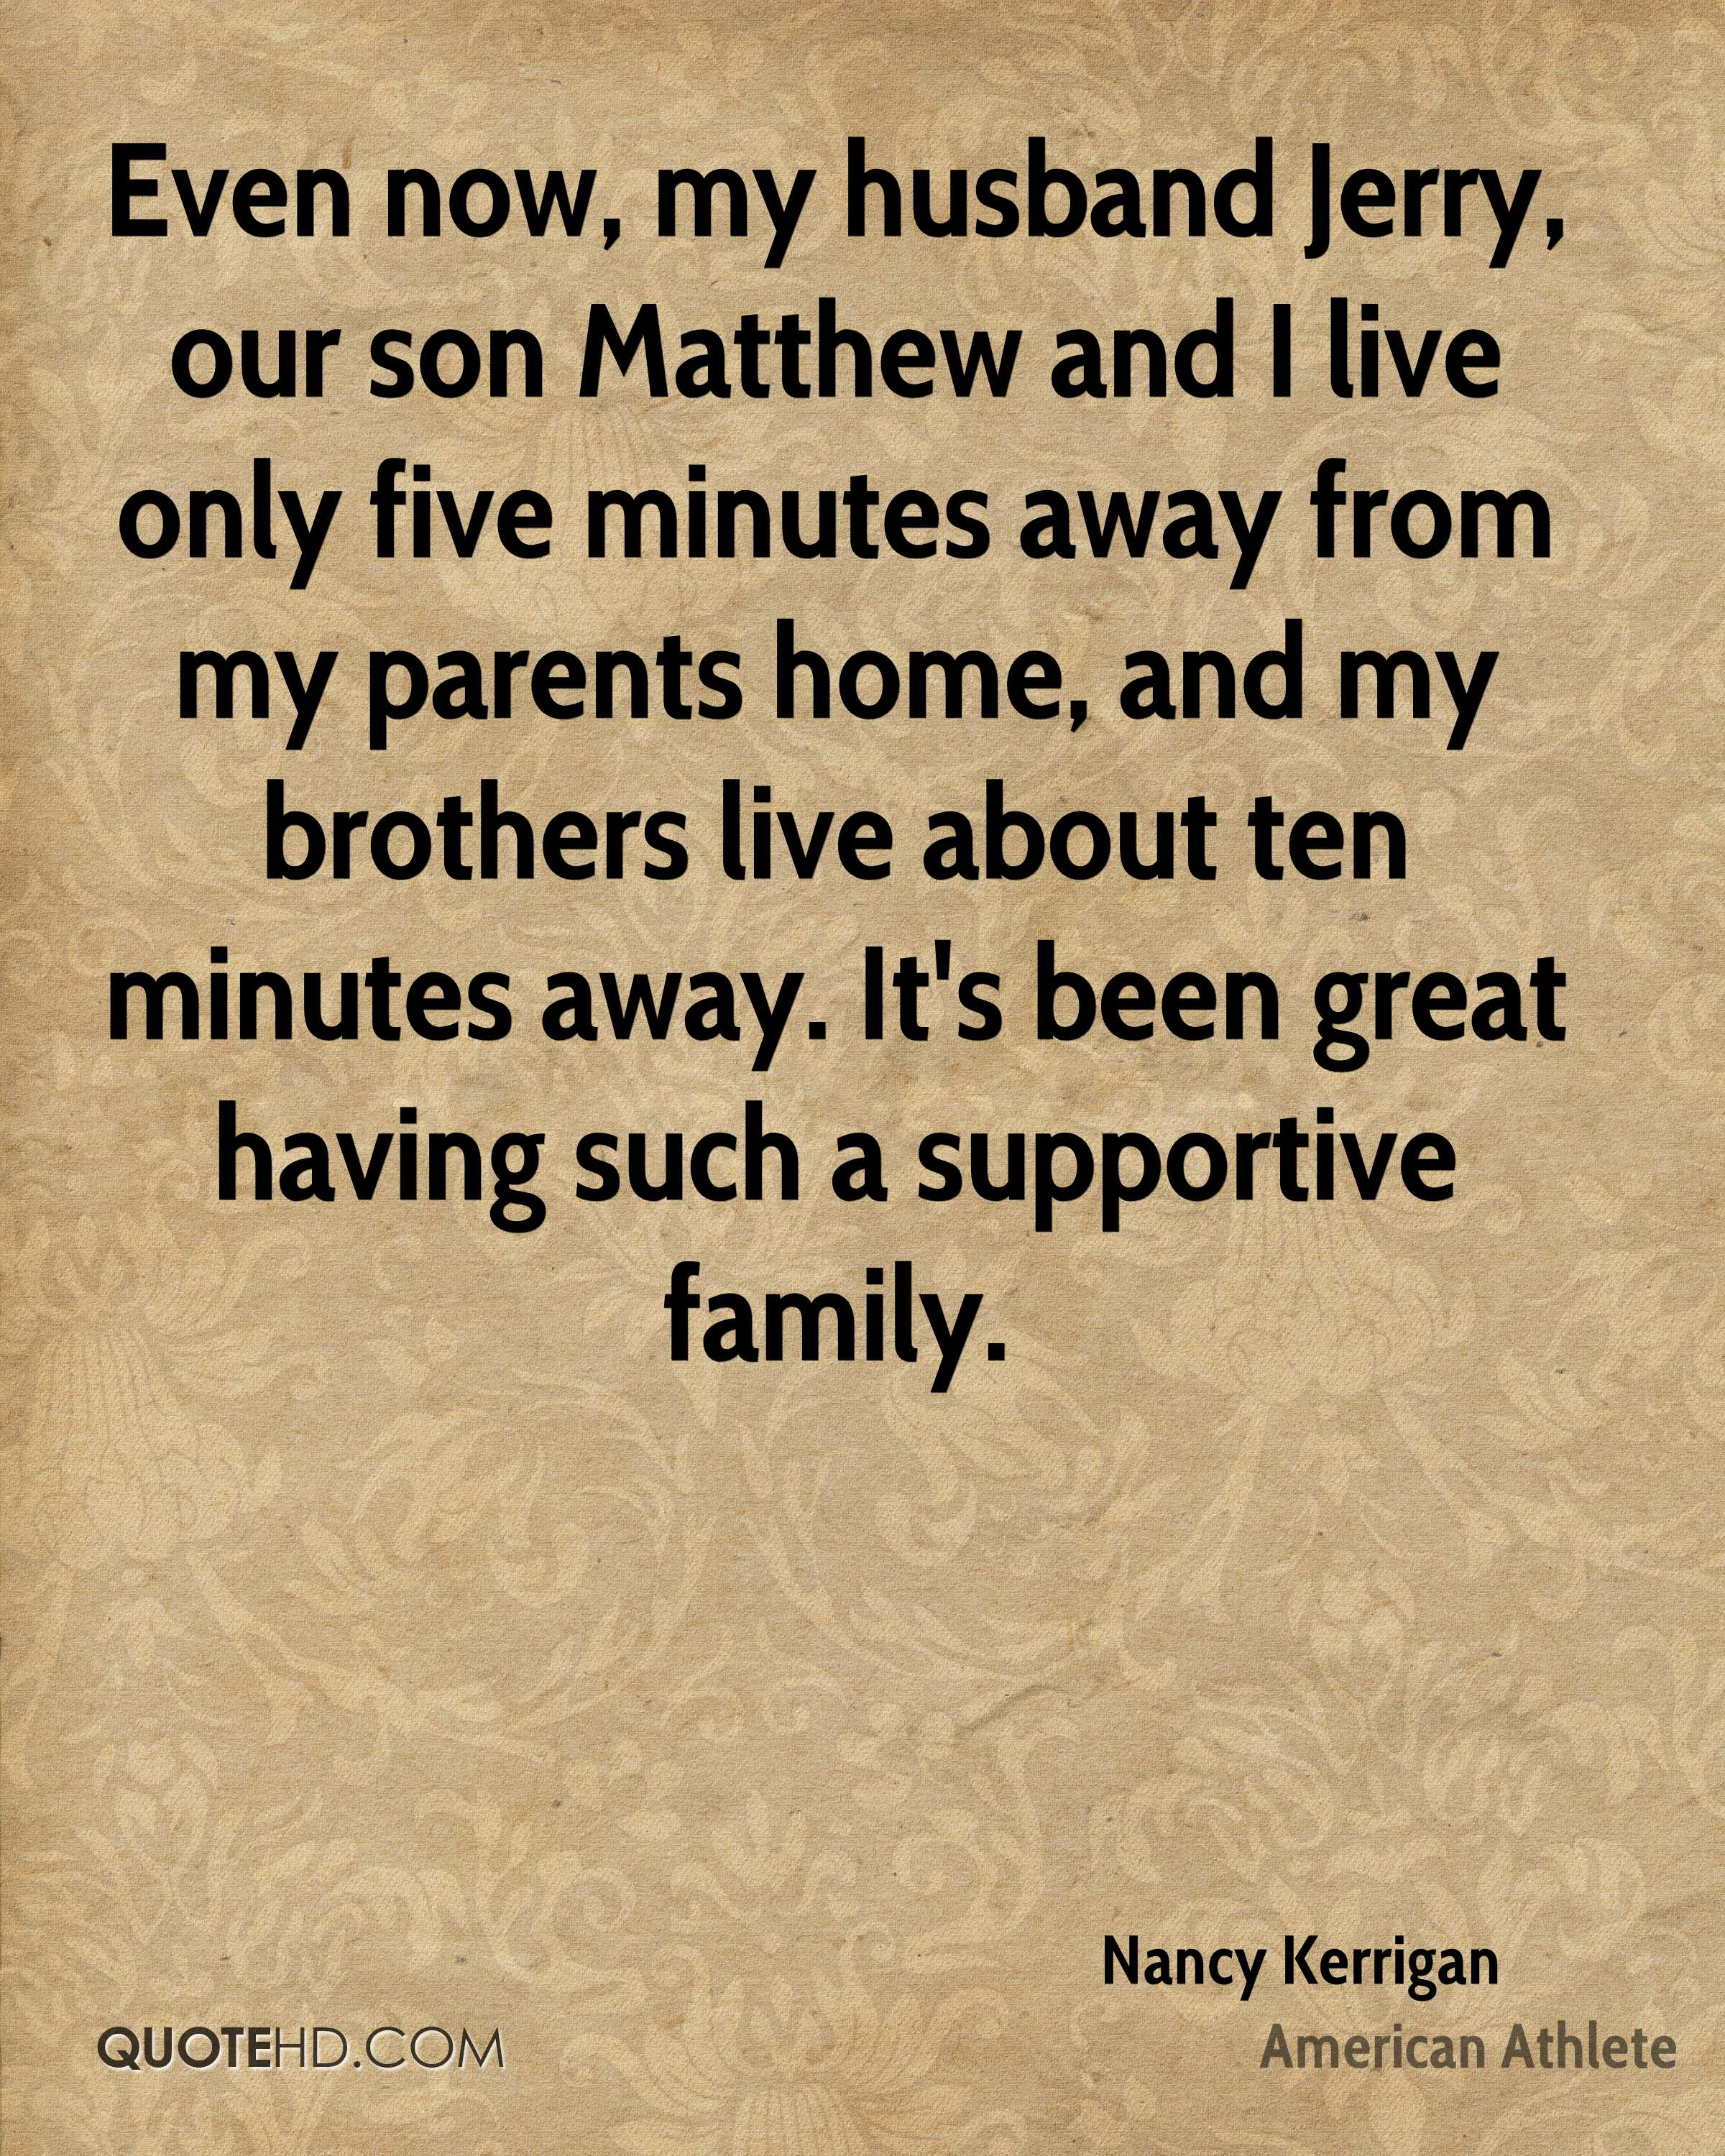 Even now, my husband Jerry, our son Matthew and I live only five minutes away from my parents home, and my brothers live about ten minutes away. It's been great having such a supportive family.